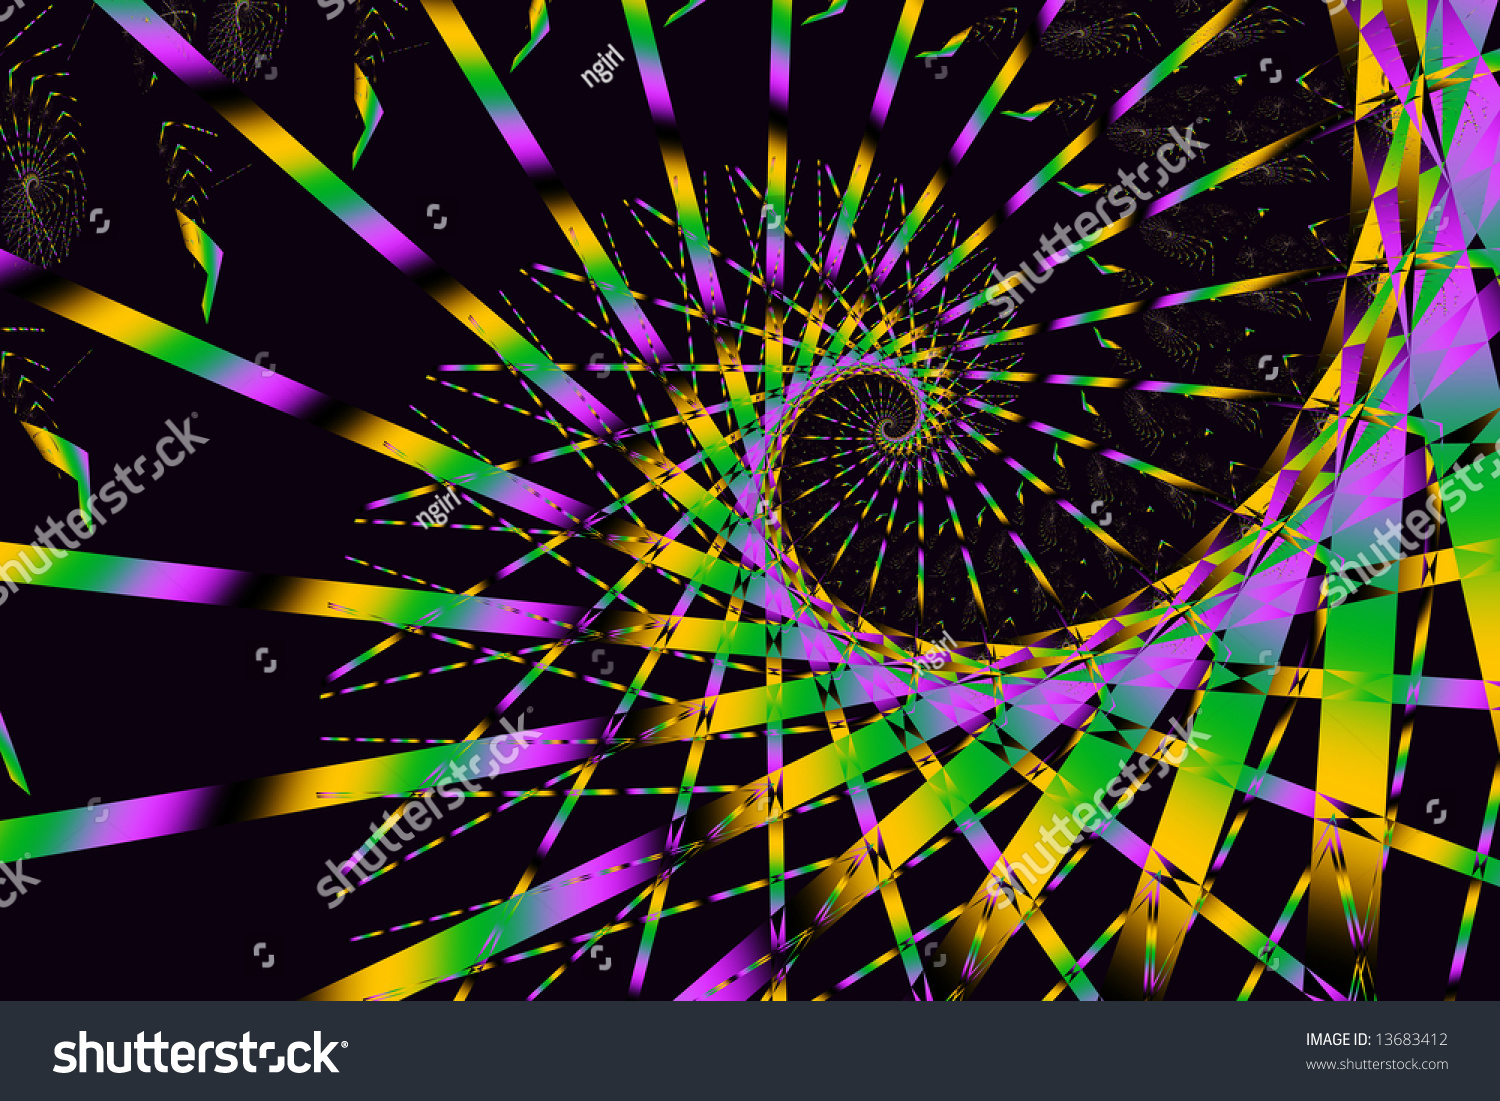 Mardi Gras Theme Fractal In Purple, Gold, And Green On Black Background. Stock Photo 13683412 ...